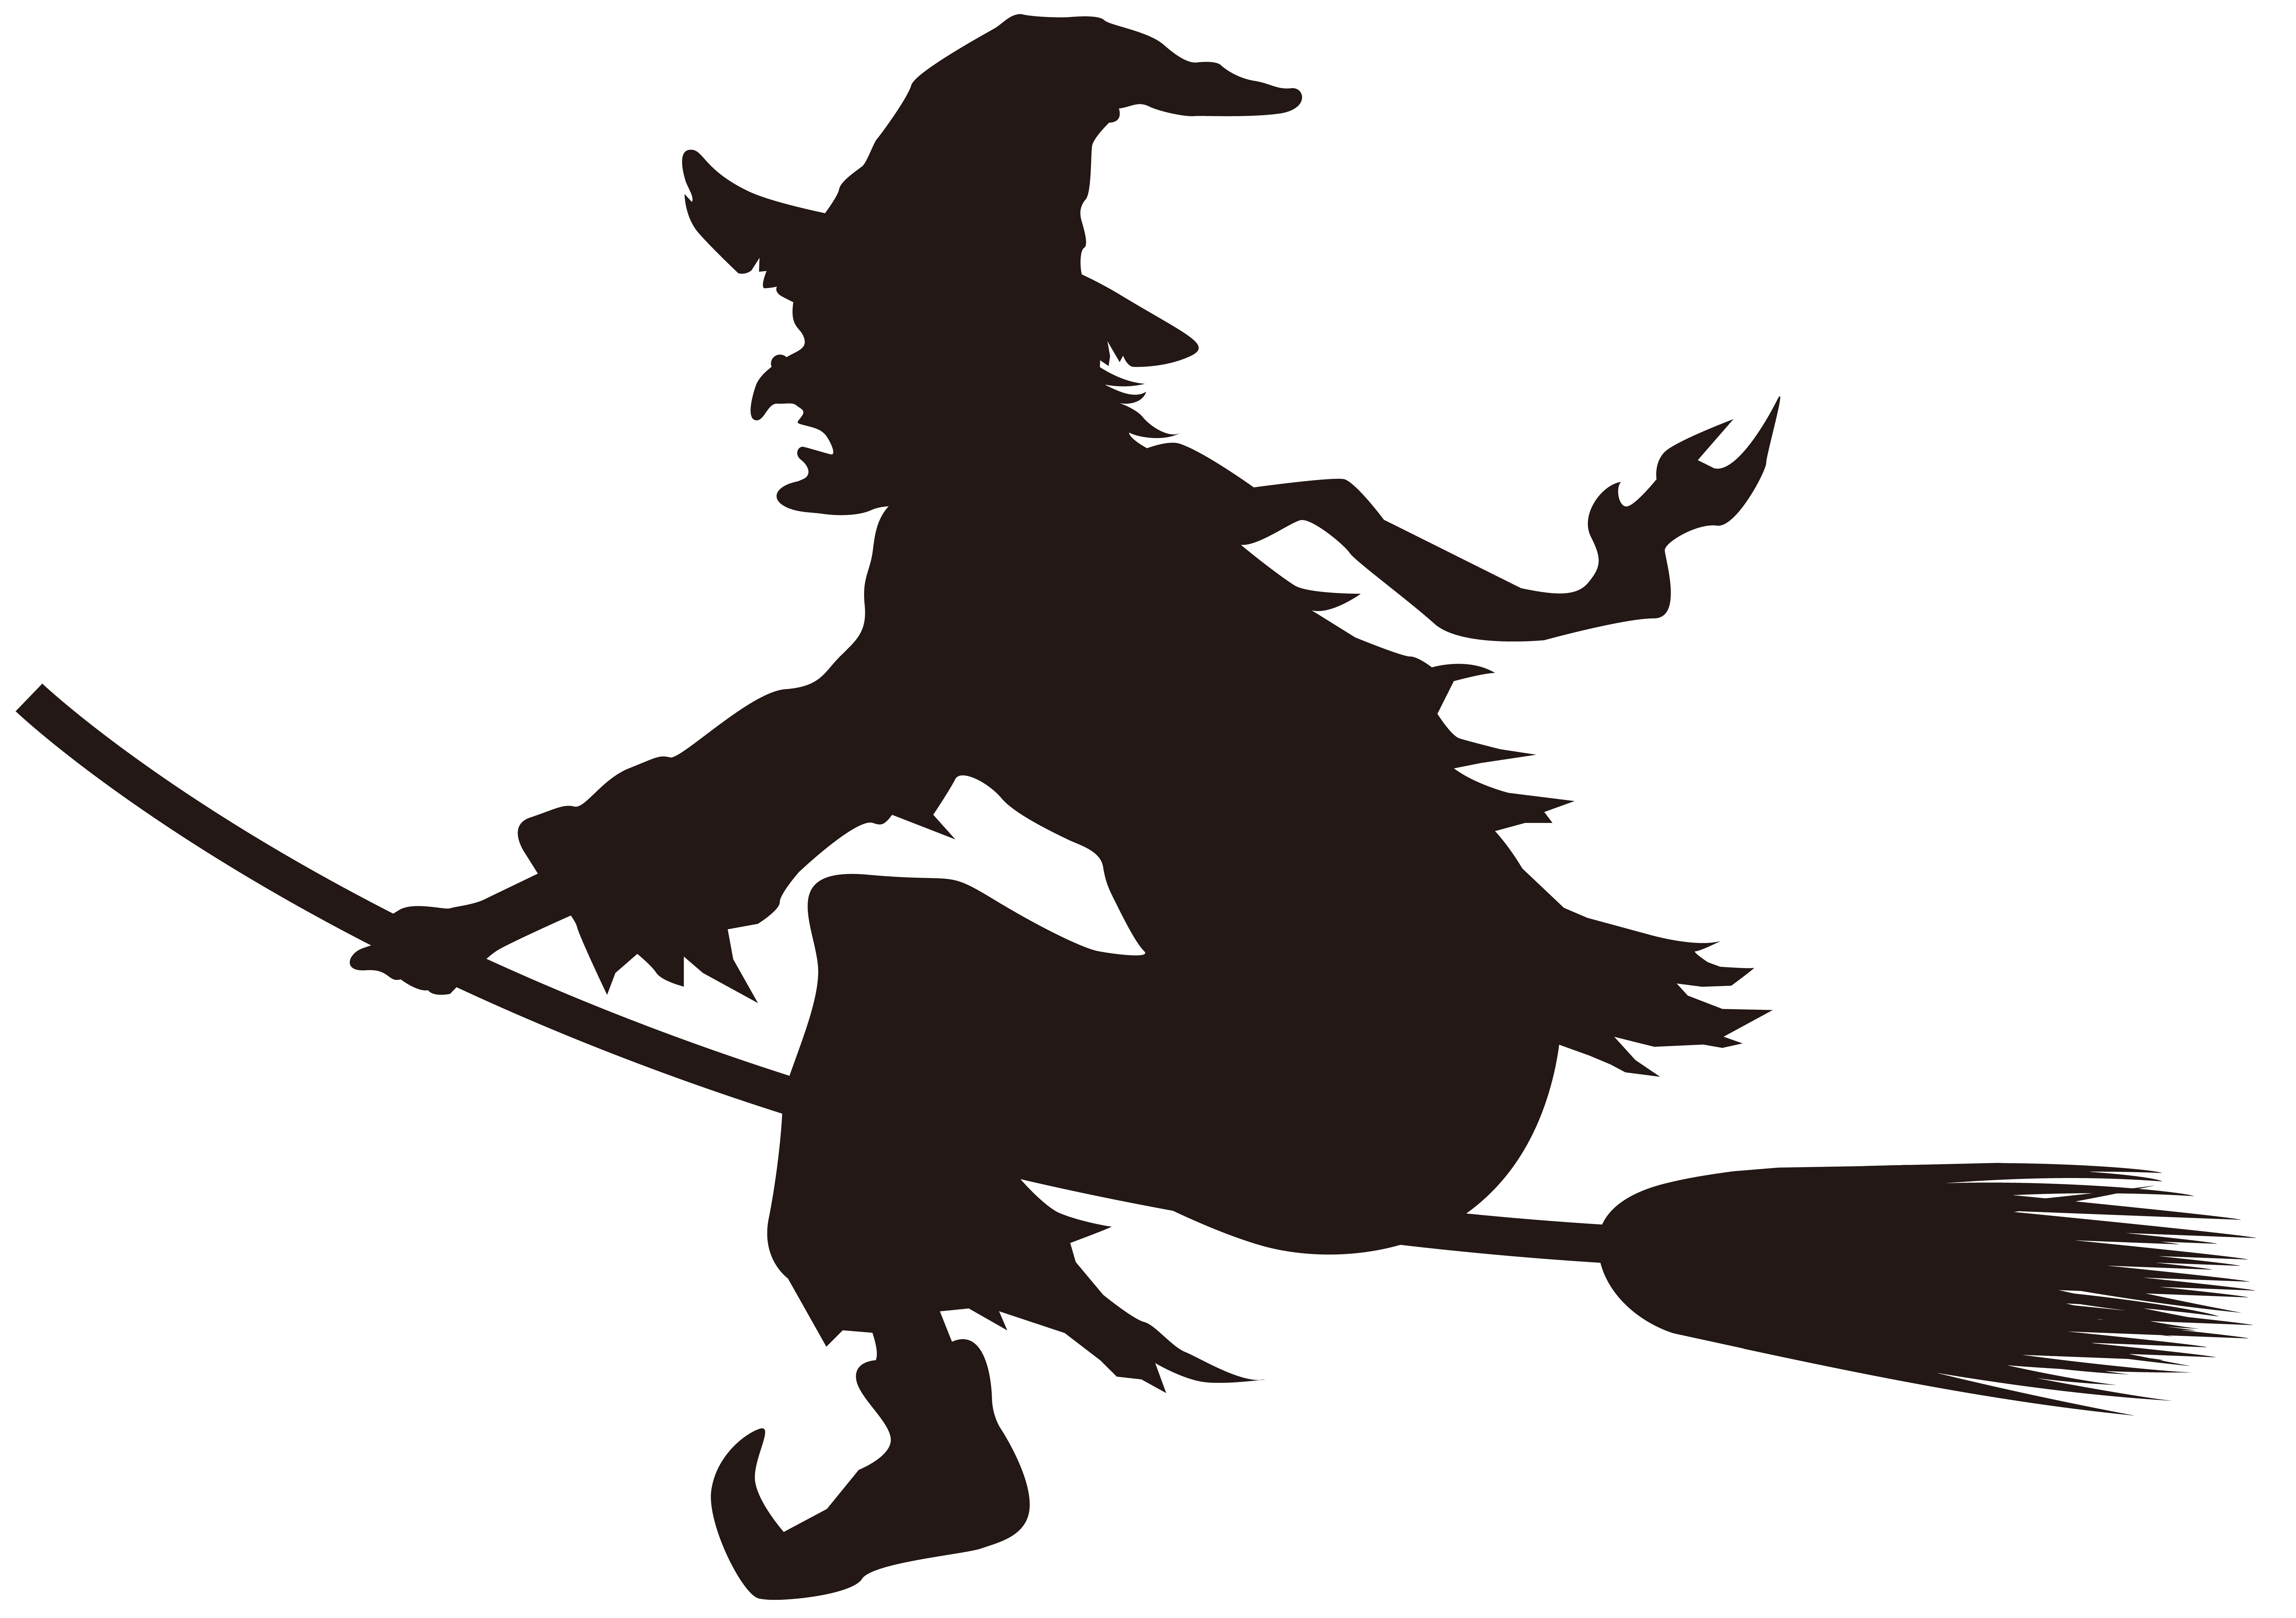 8000x5637 Halloween Witch On Broom Silhouette Png Clip Art Imageu200b Gallery